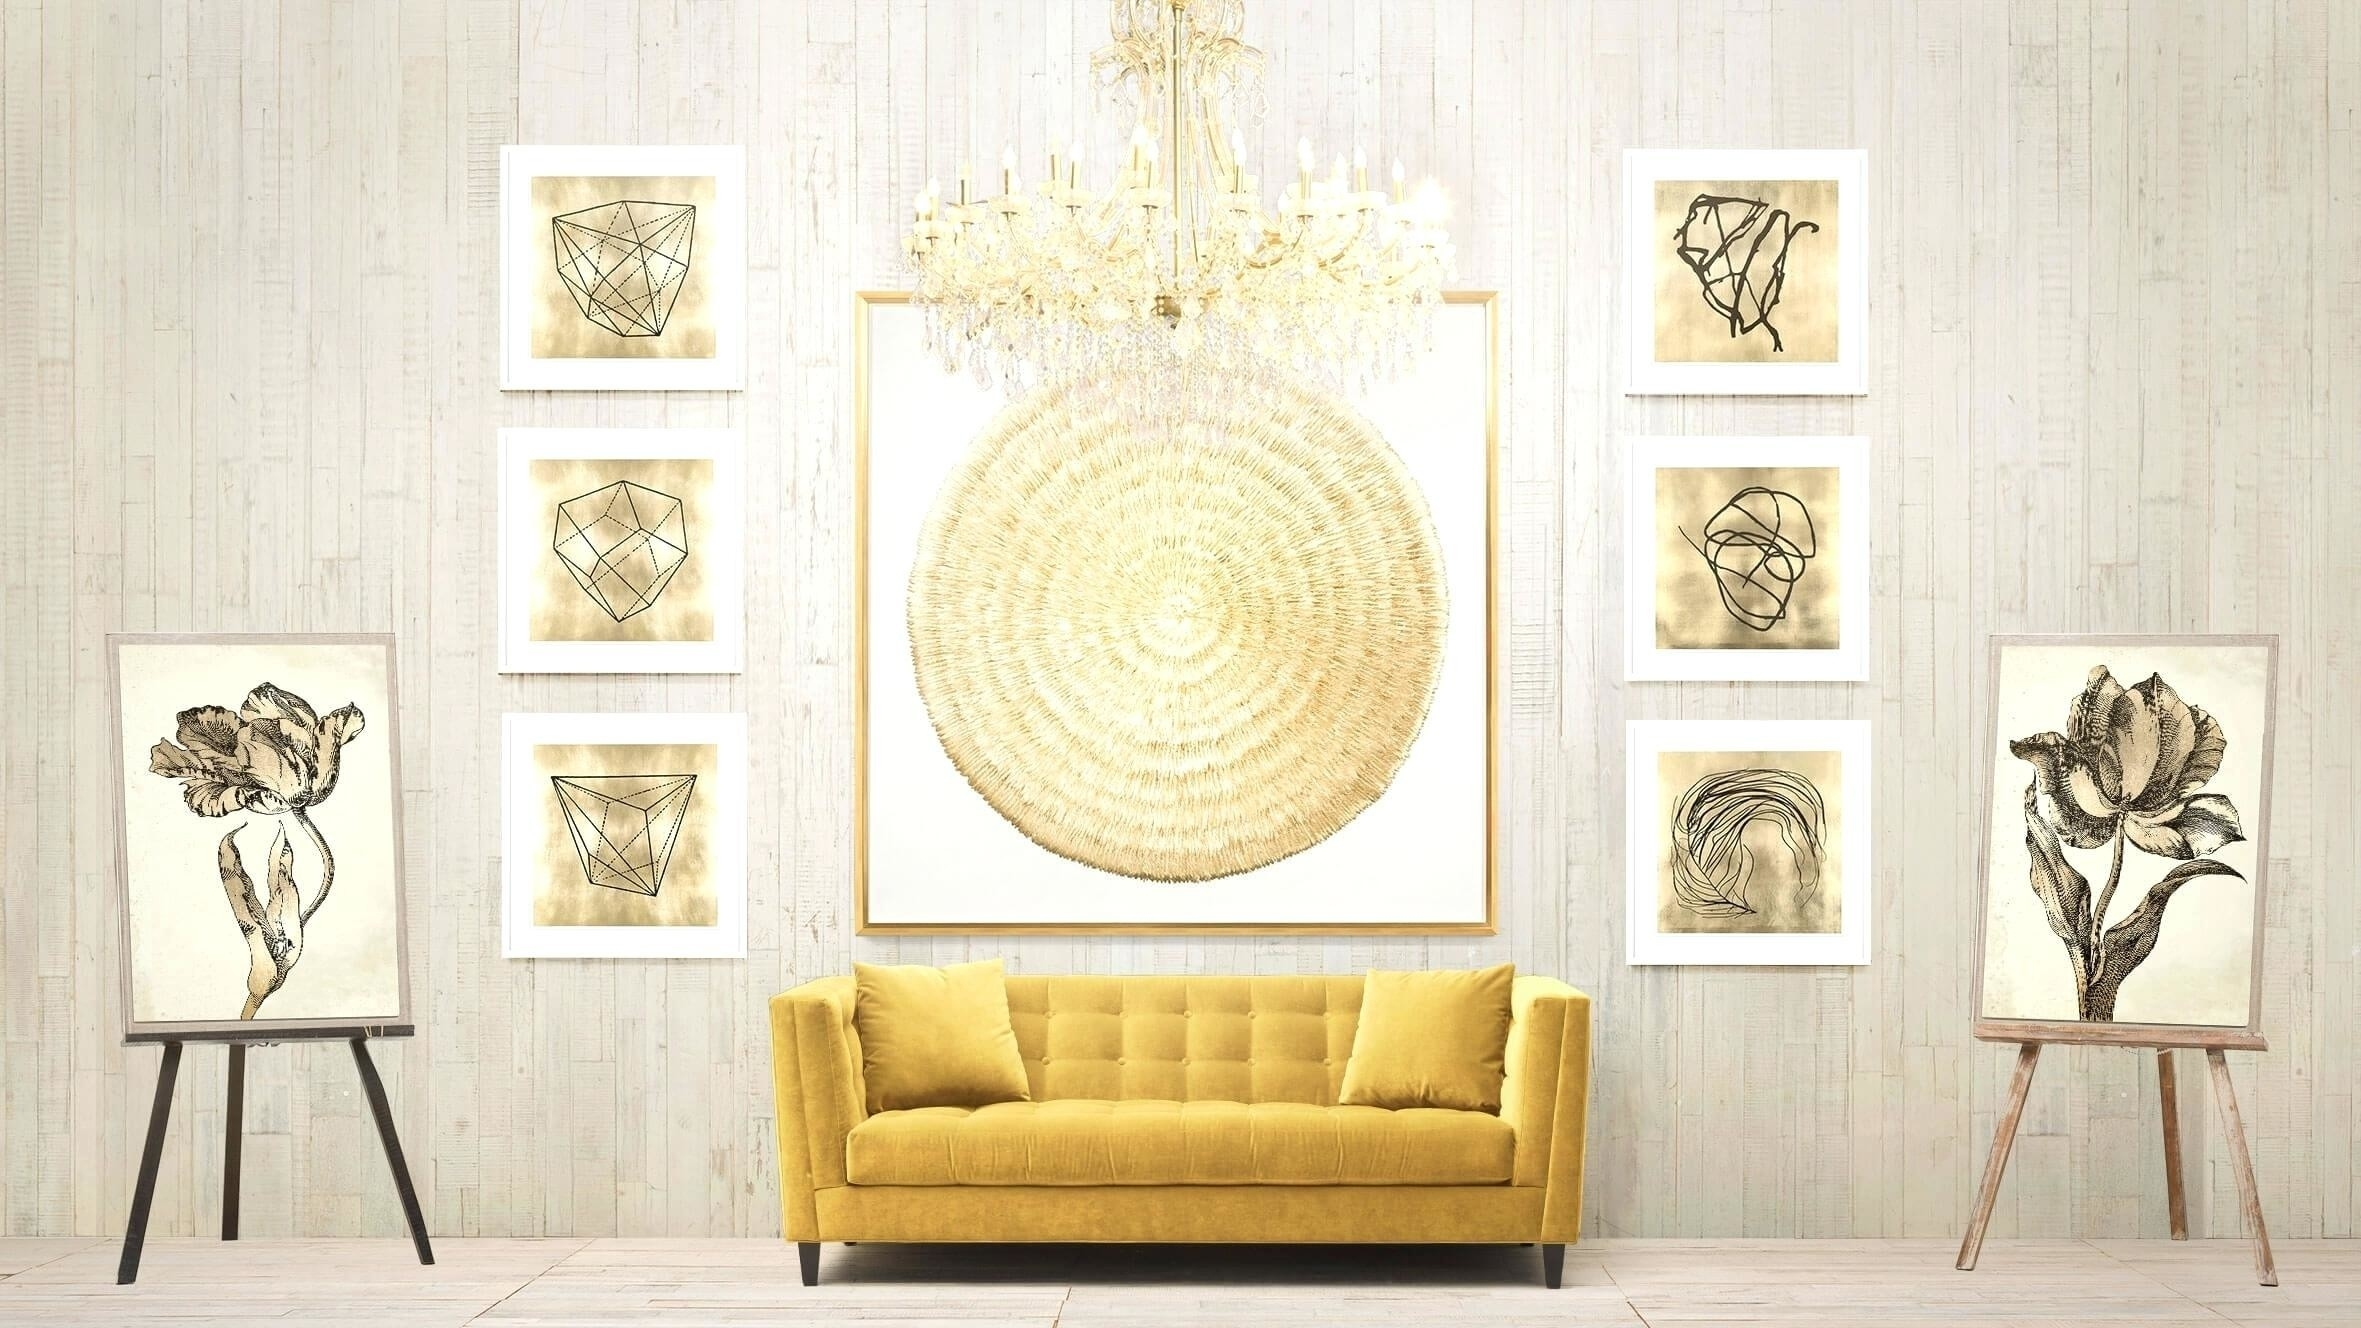 15 Best Ideas of Gold Wall Accents